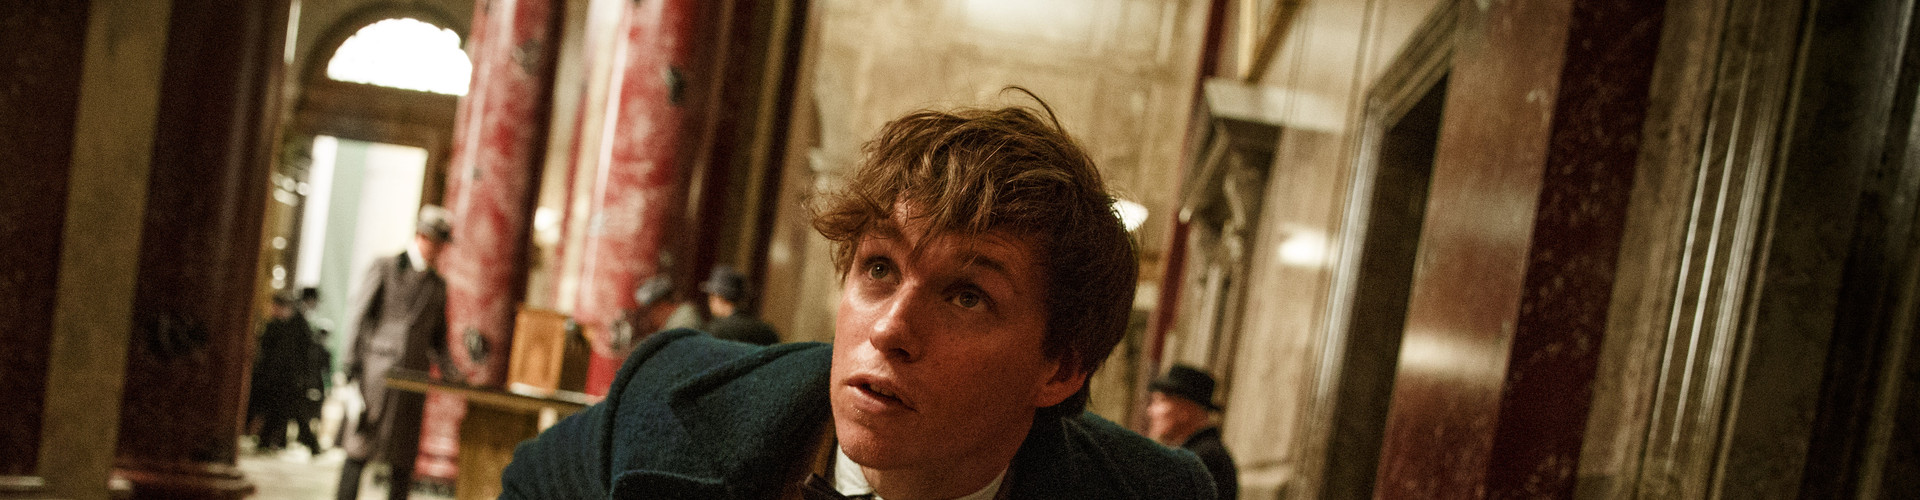 "EDDIE REDMAYNE as Newt Scamander in Warner Bros. Pictures' fantasy adventure """"Fantastic Beasts and where to find them ""  a Warner Bros. Pictures release."